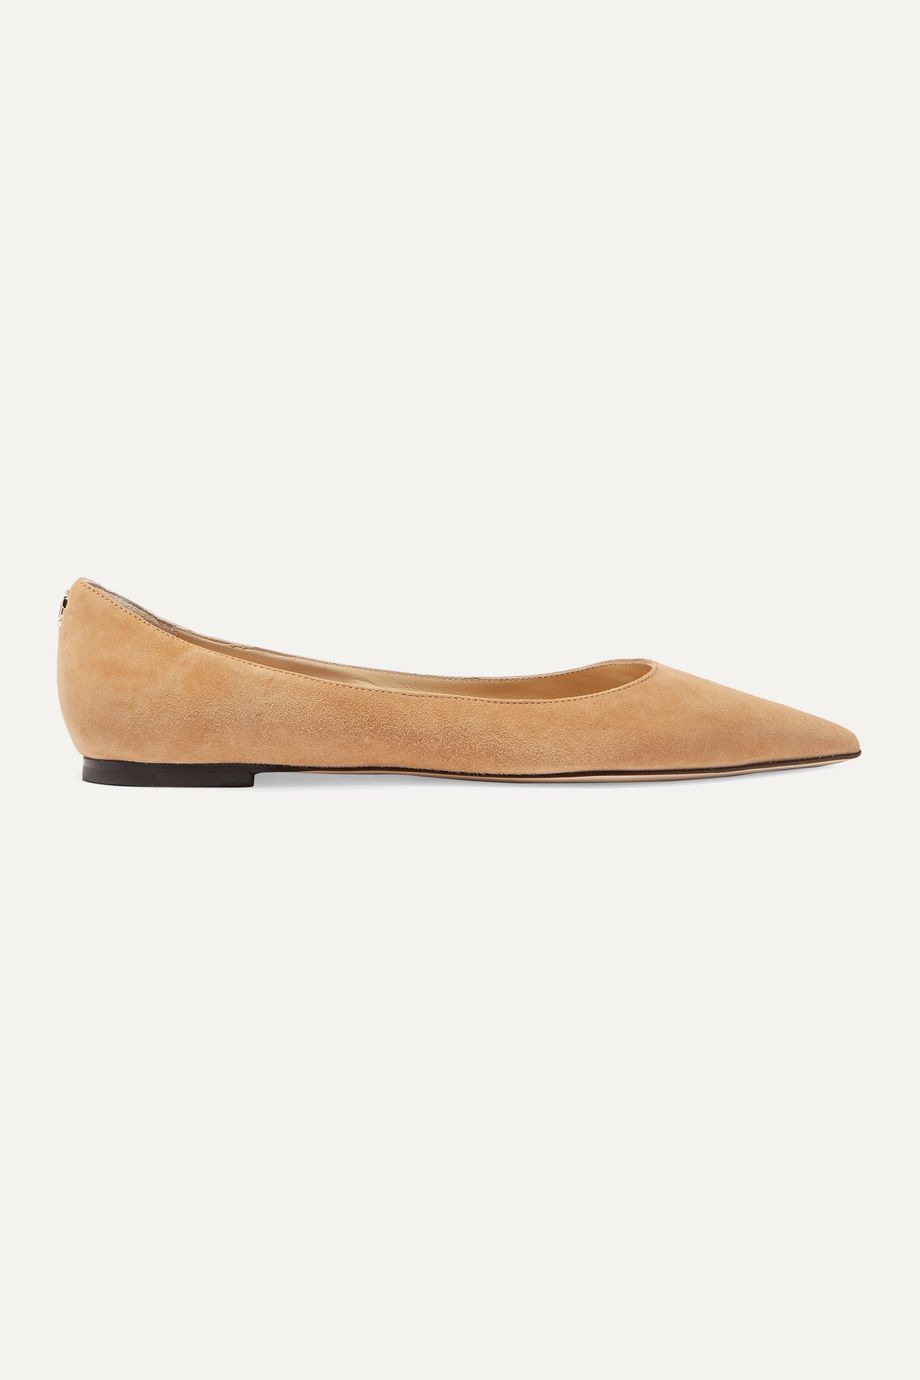 Jimmy Choo Love suede point-toe flats